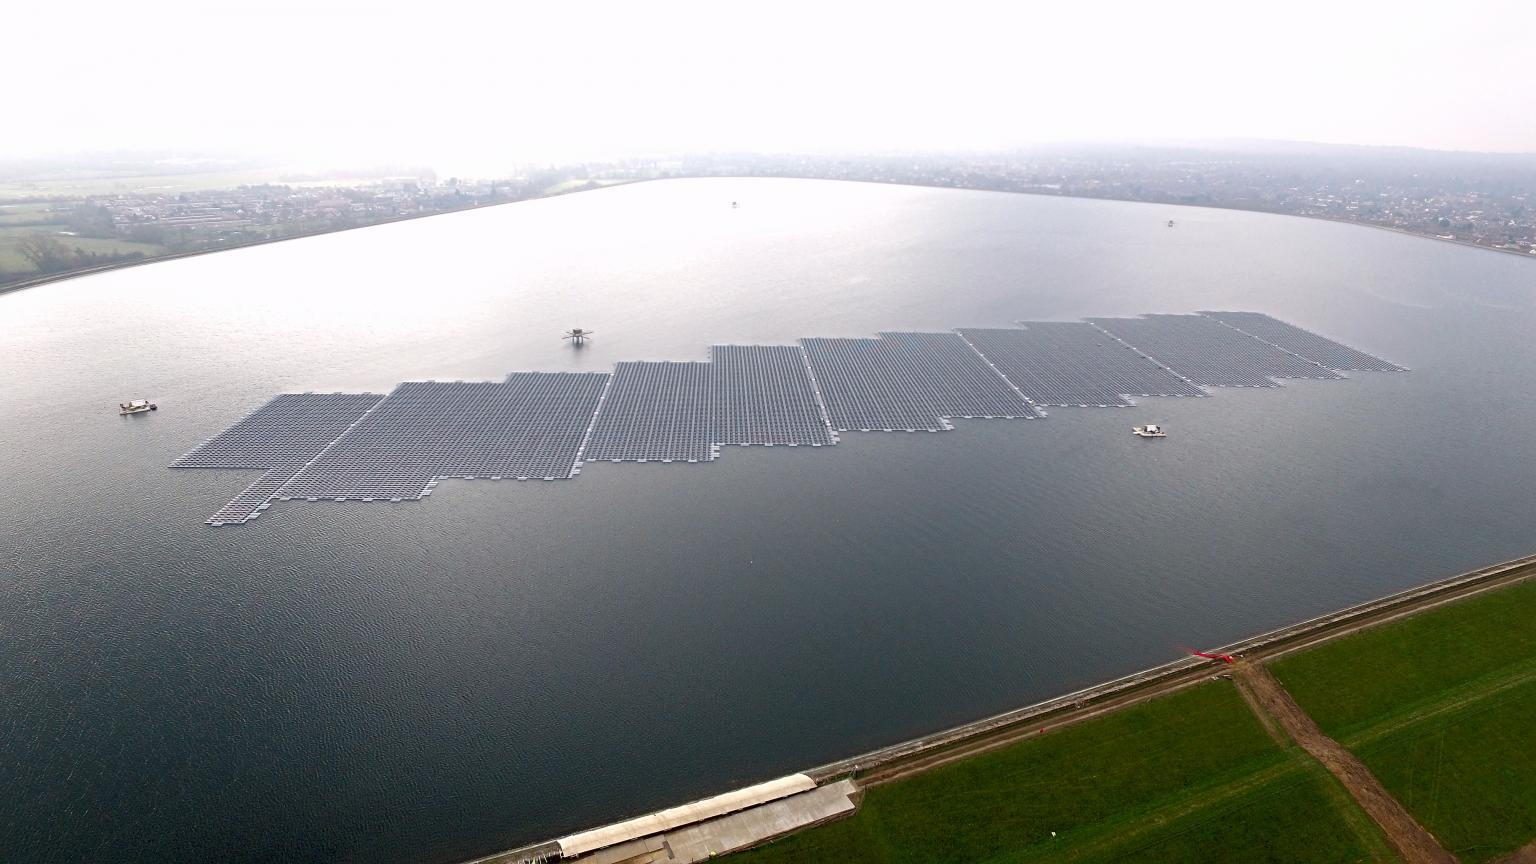 More than 23,000 solar photovoltaic (PV) panels are being floated on the reservoir